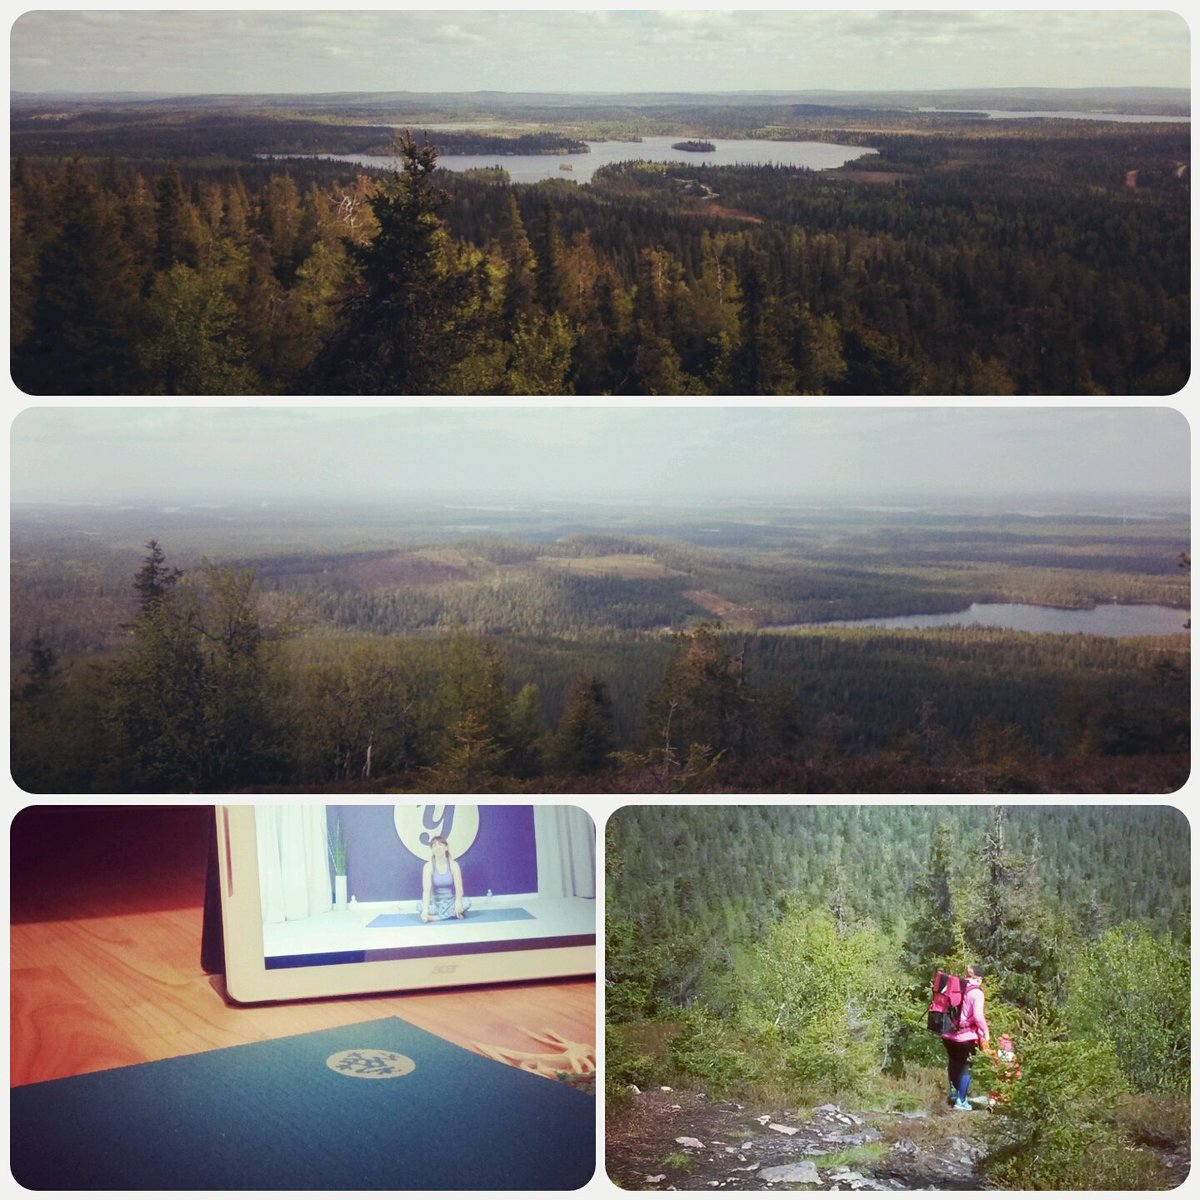 Marvelous day behind me. Some #yoga and #hiking in #kuusamo #ruka #valtavaaranhuiputus @yogaiaofficial Have a nice #midsummerday #juhannus <br>http://pic.twitter.com/jUuM89d0rT